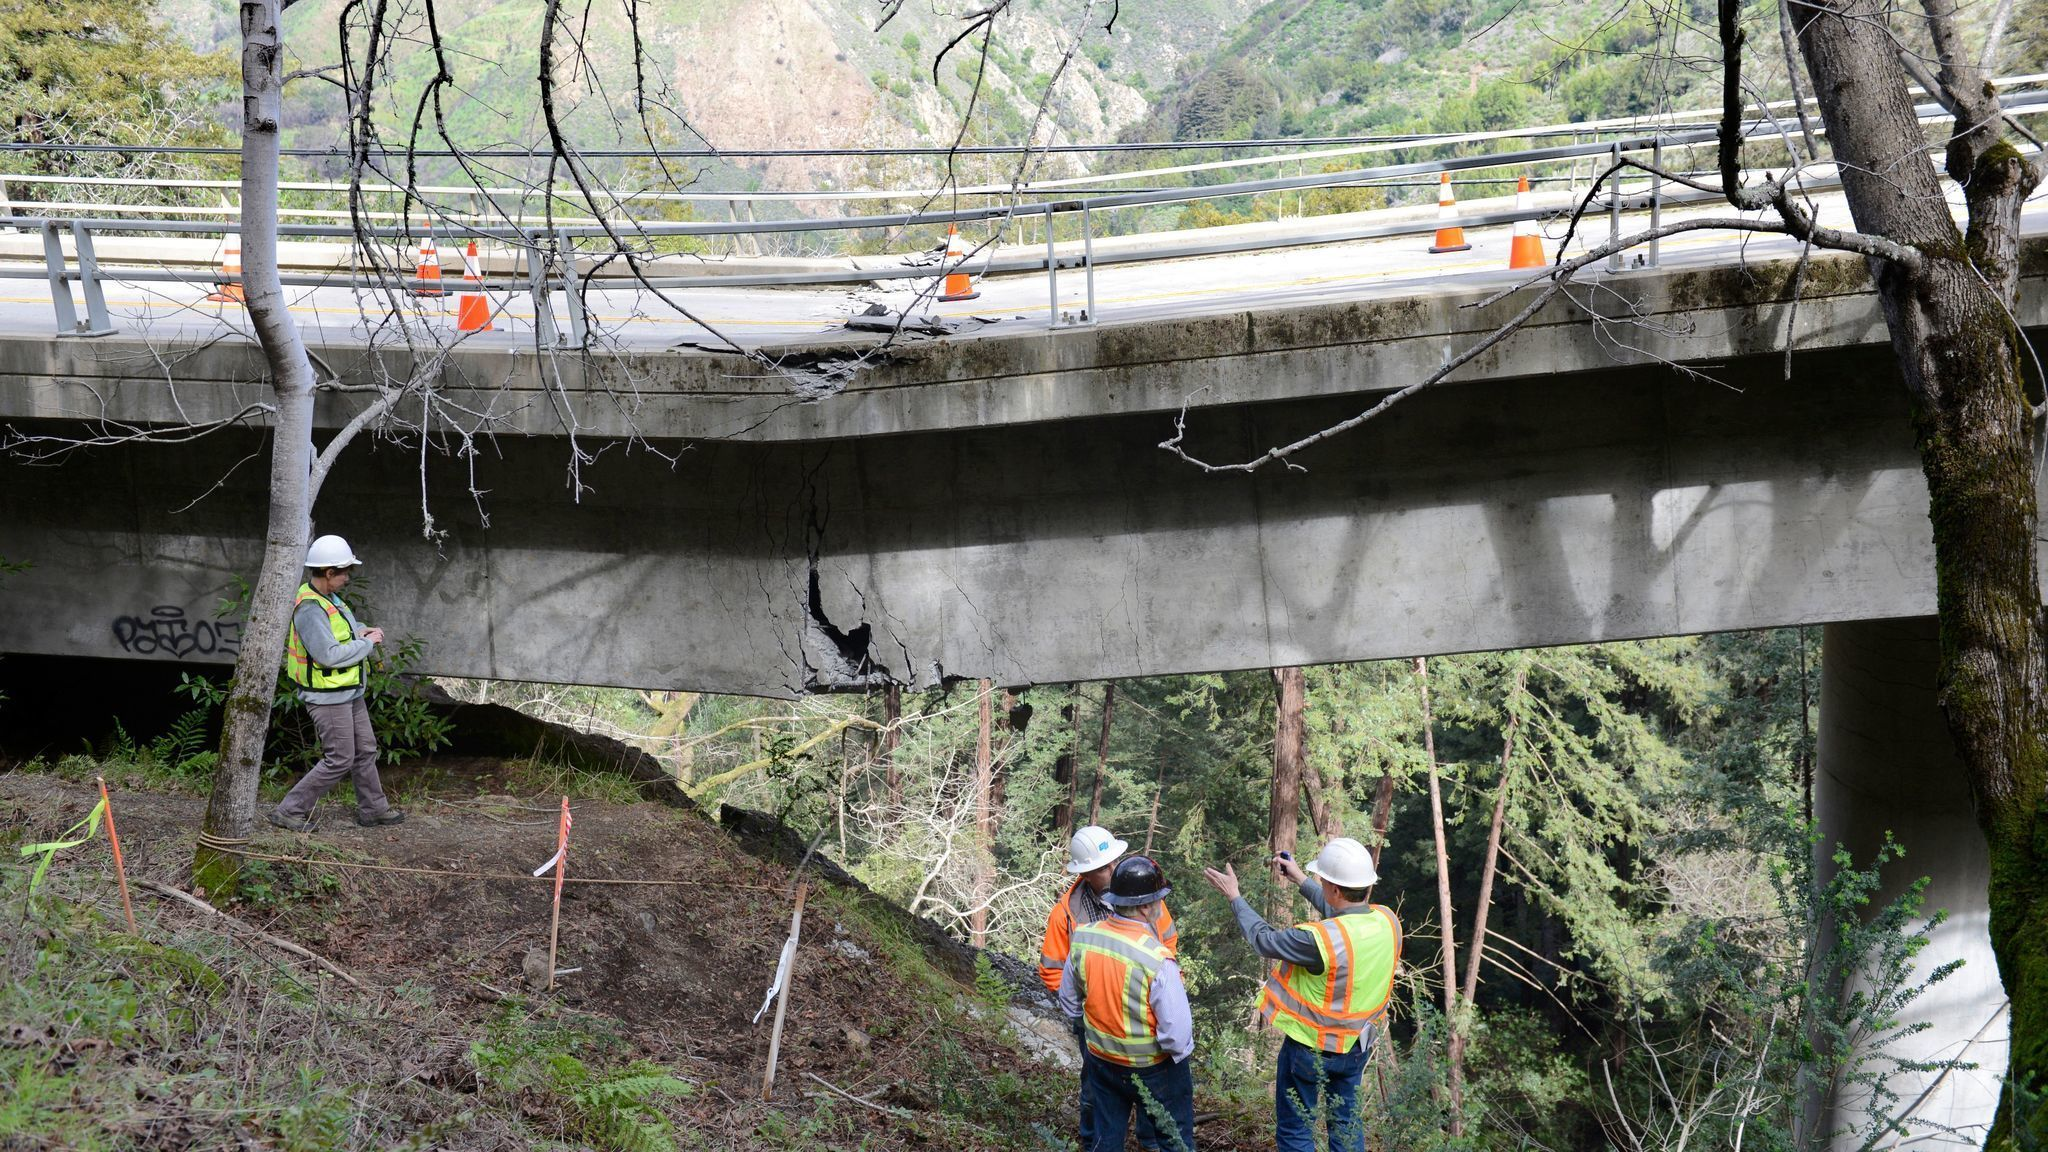 Californias coastal Highway 1 is now temporarily closed in